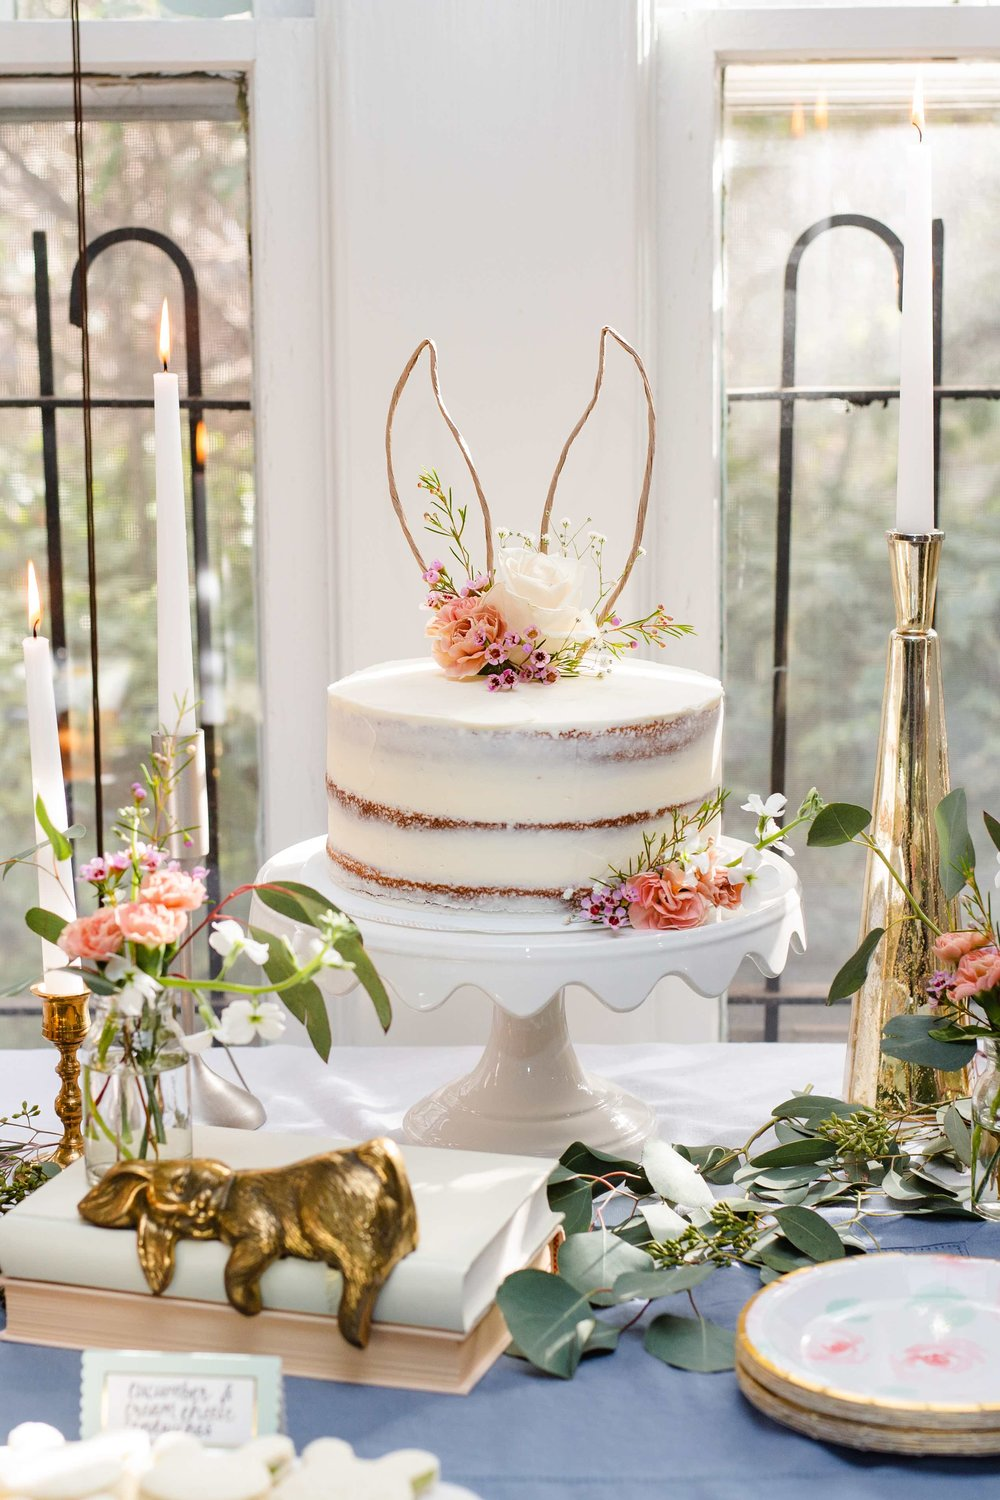 A Bunny Themed Baby Shower - mattyewoodcock.com